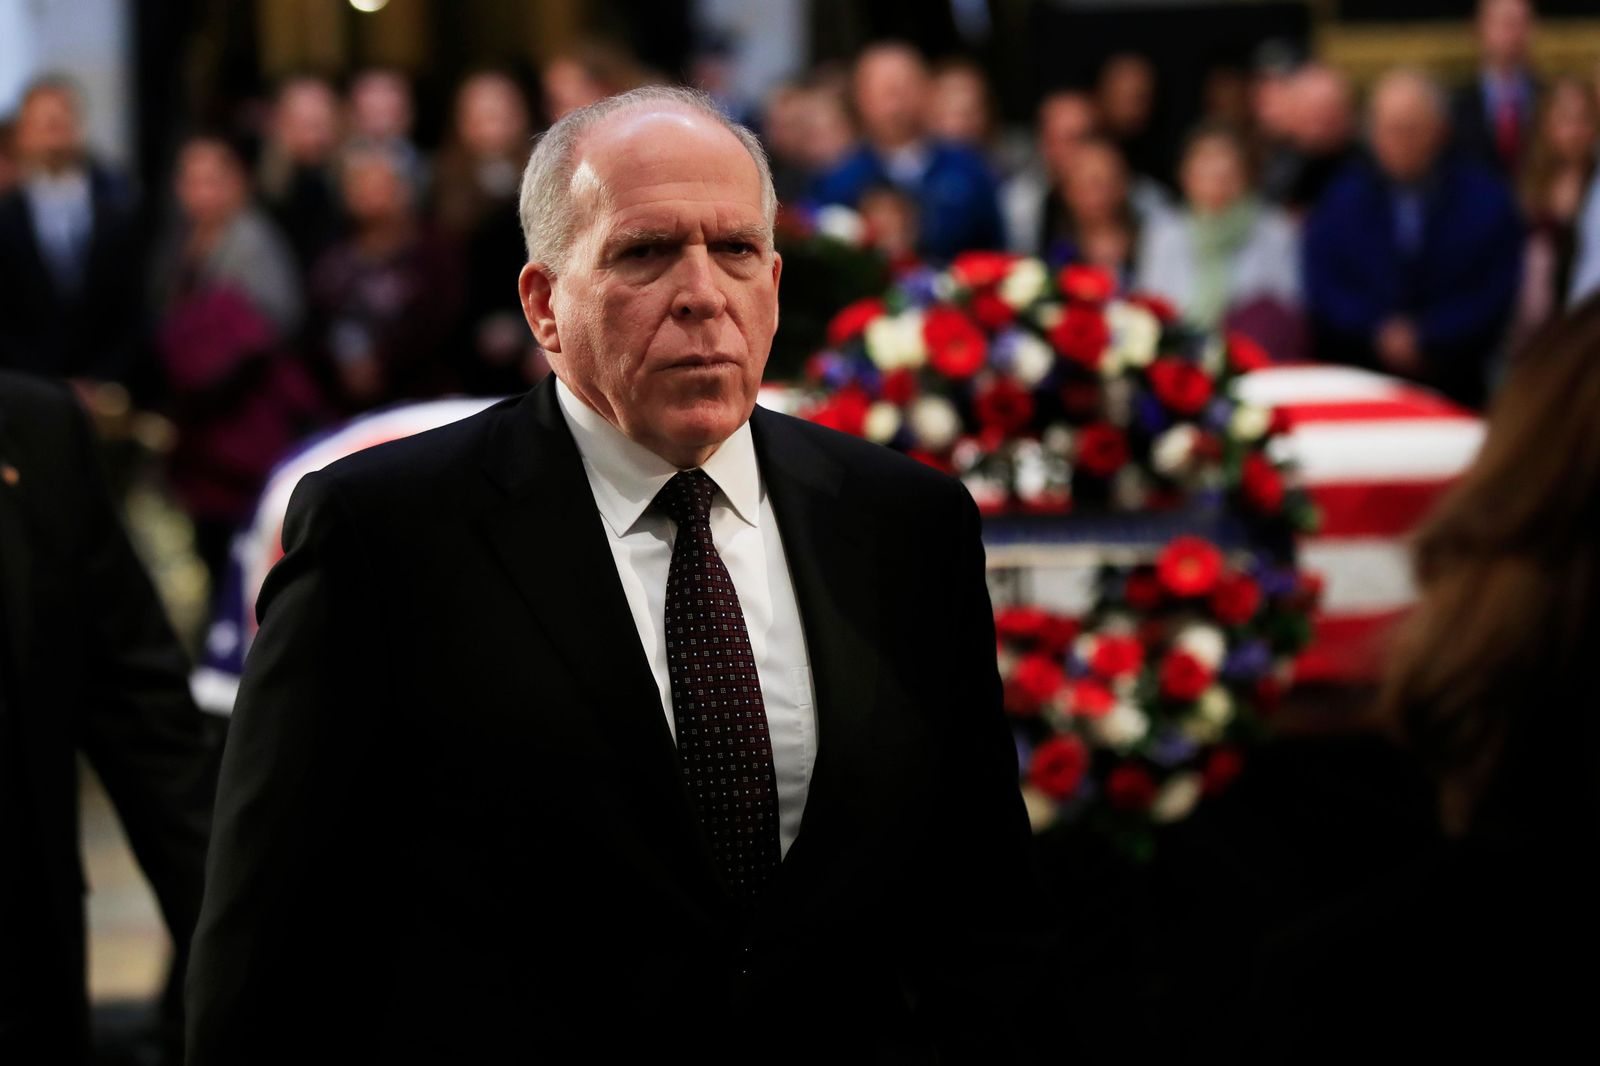 Former CIA Director John Brennan, leaves the Capitol Rotunda after paying his last respects to former President George H.W. Bush as he lies in state at the U.S. Capitol in Washington, Tuesday, Dec. 4, 2018. (AP Photo/Manuel Balce Ceneta)